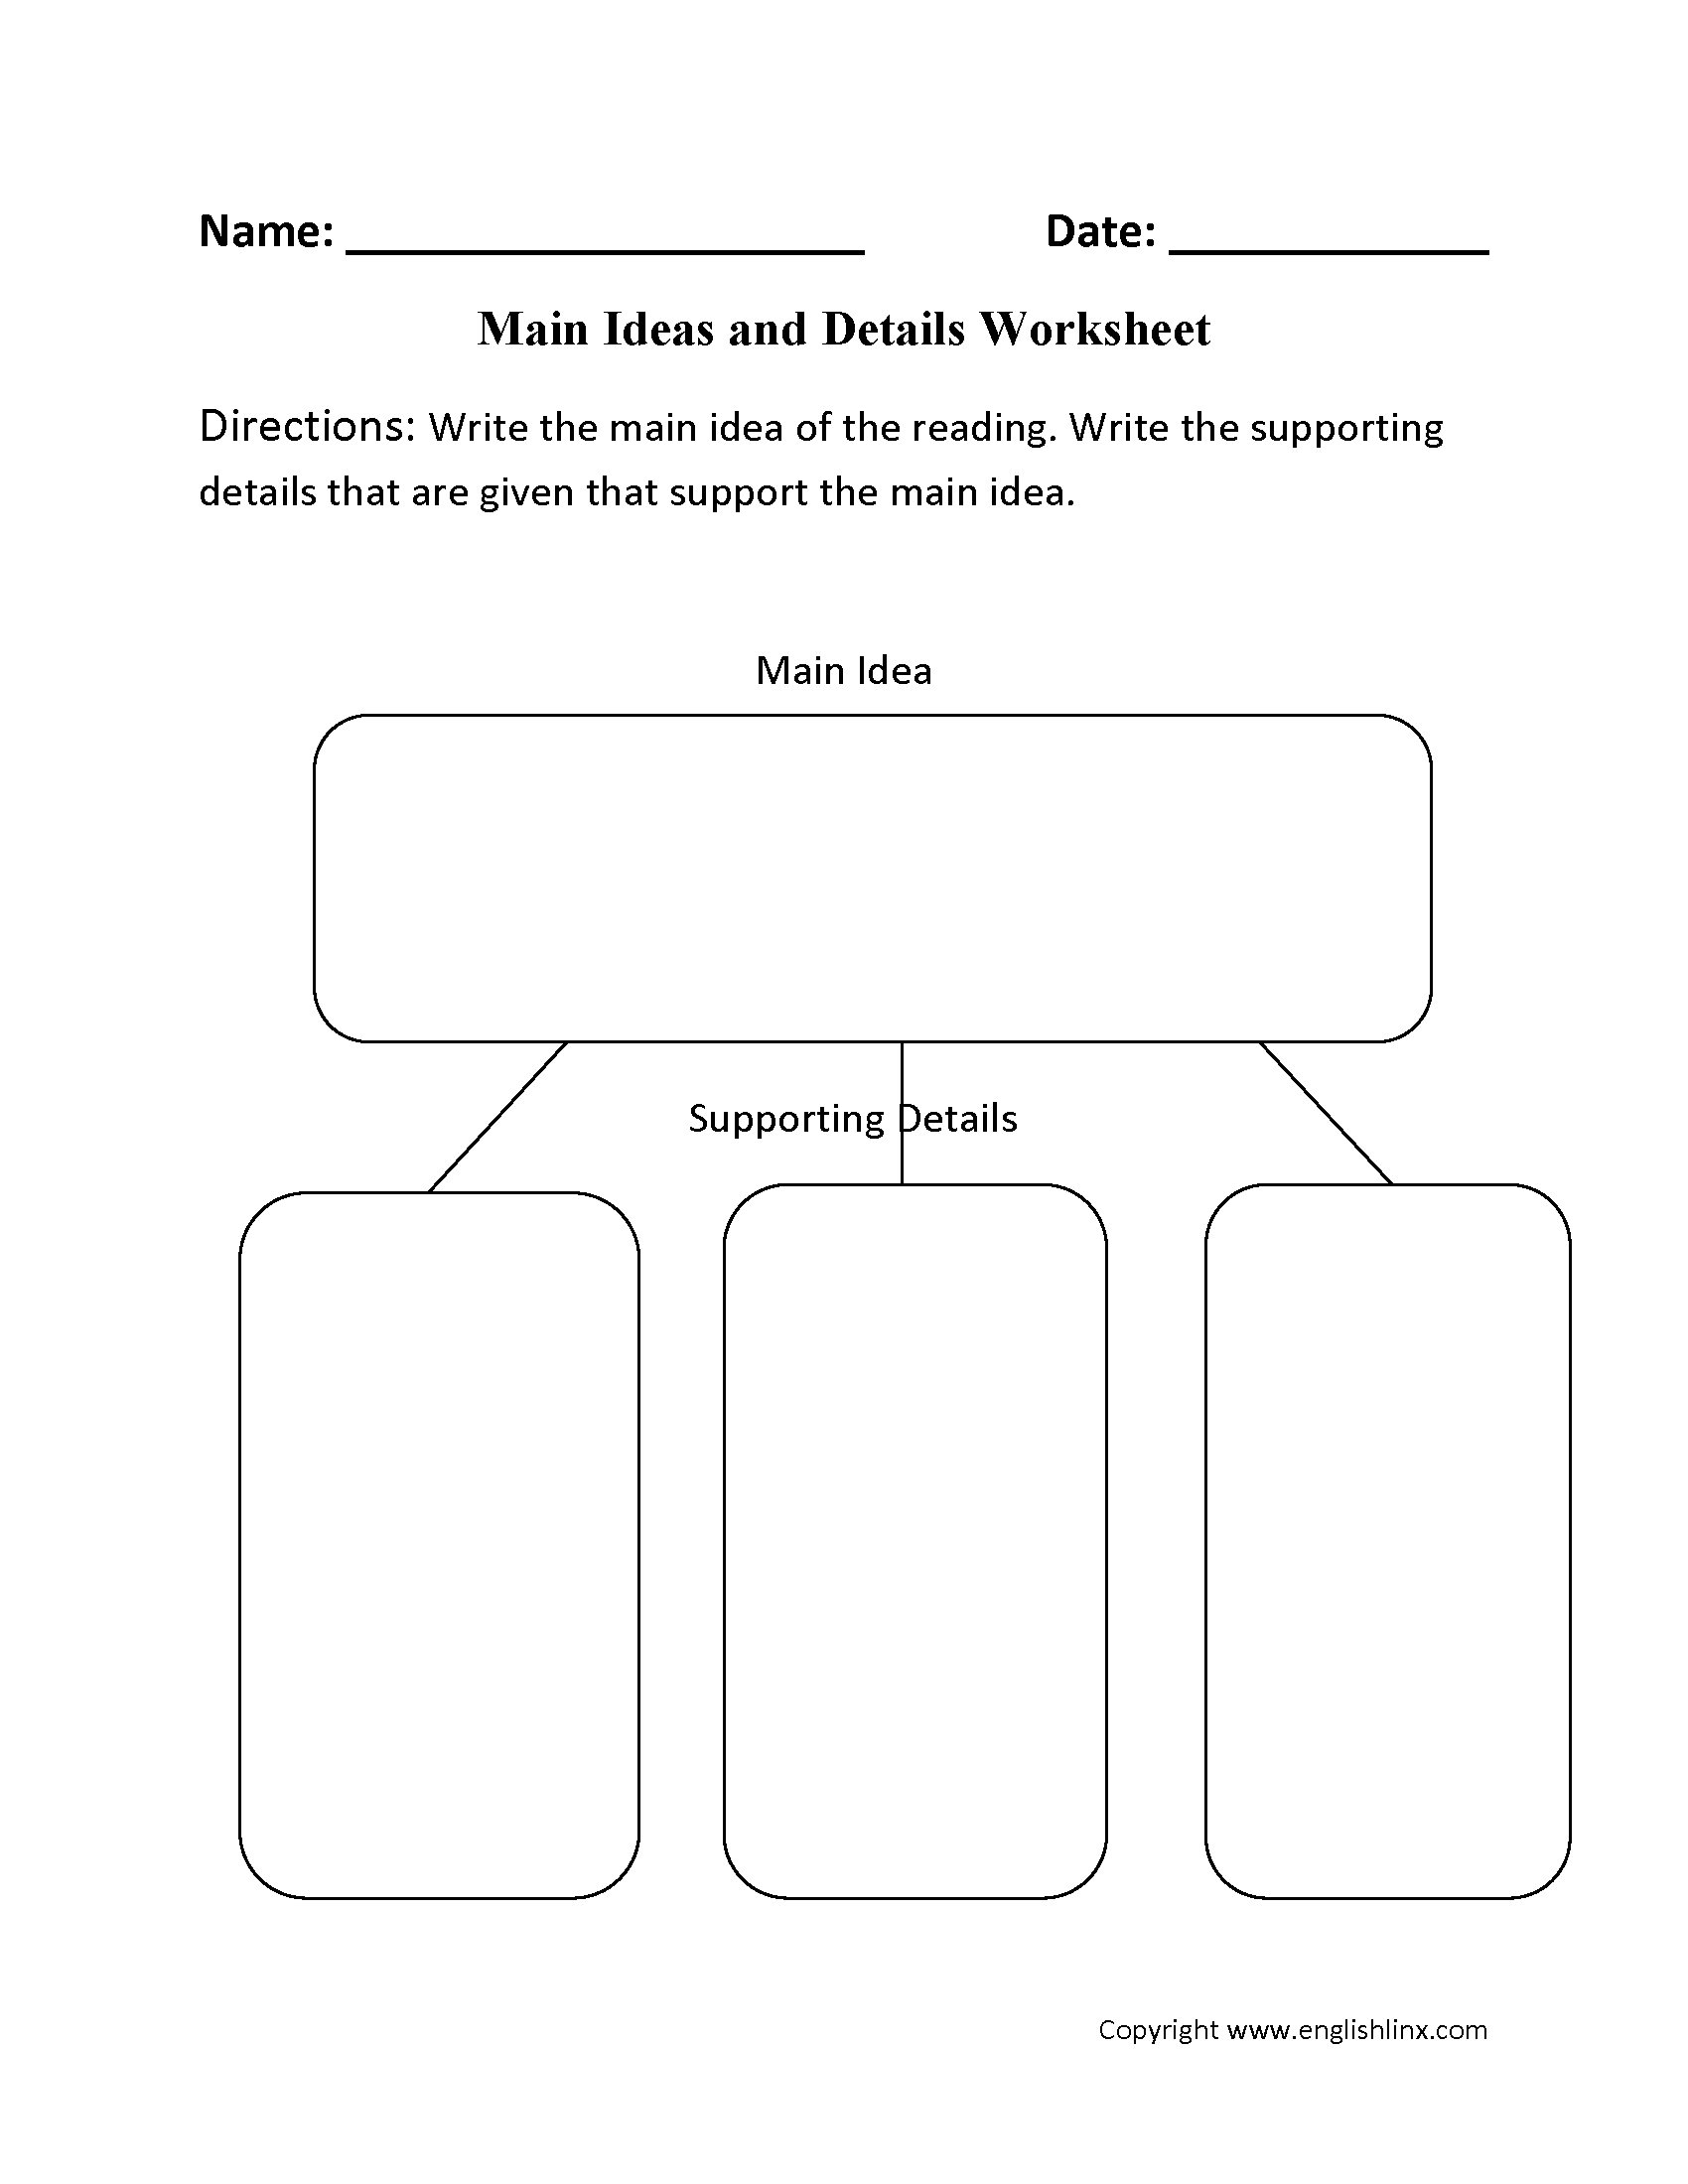 reading worksheets | main idea worksheets